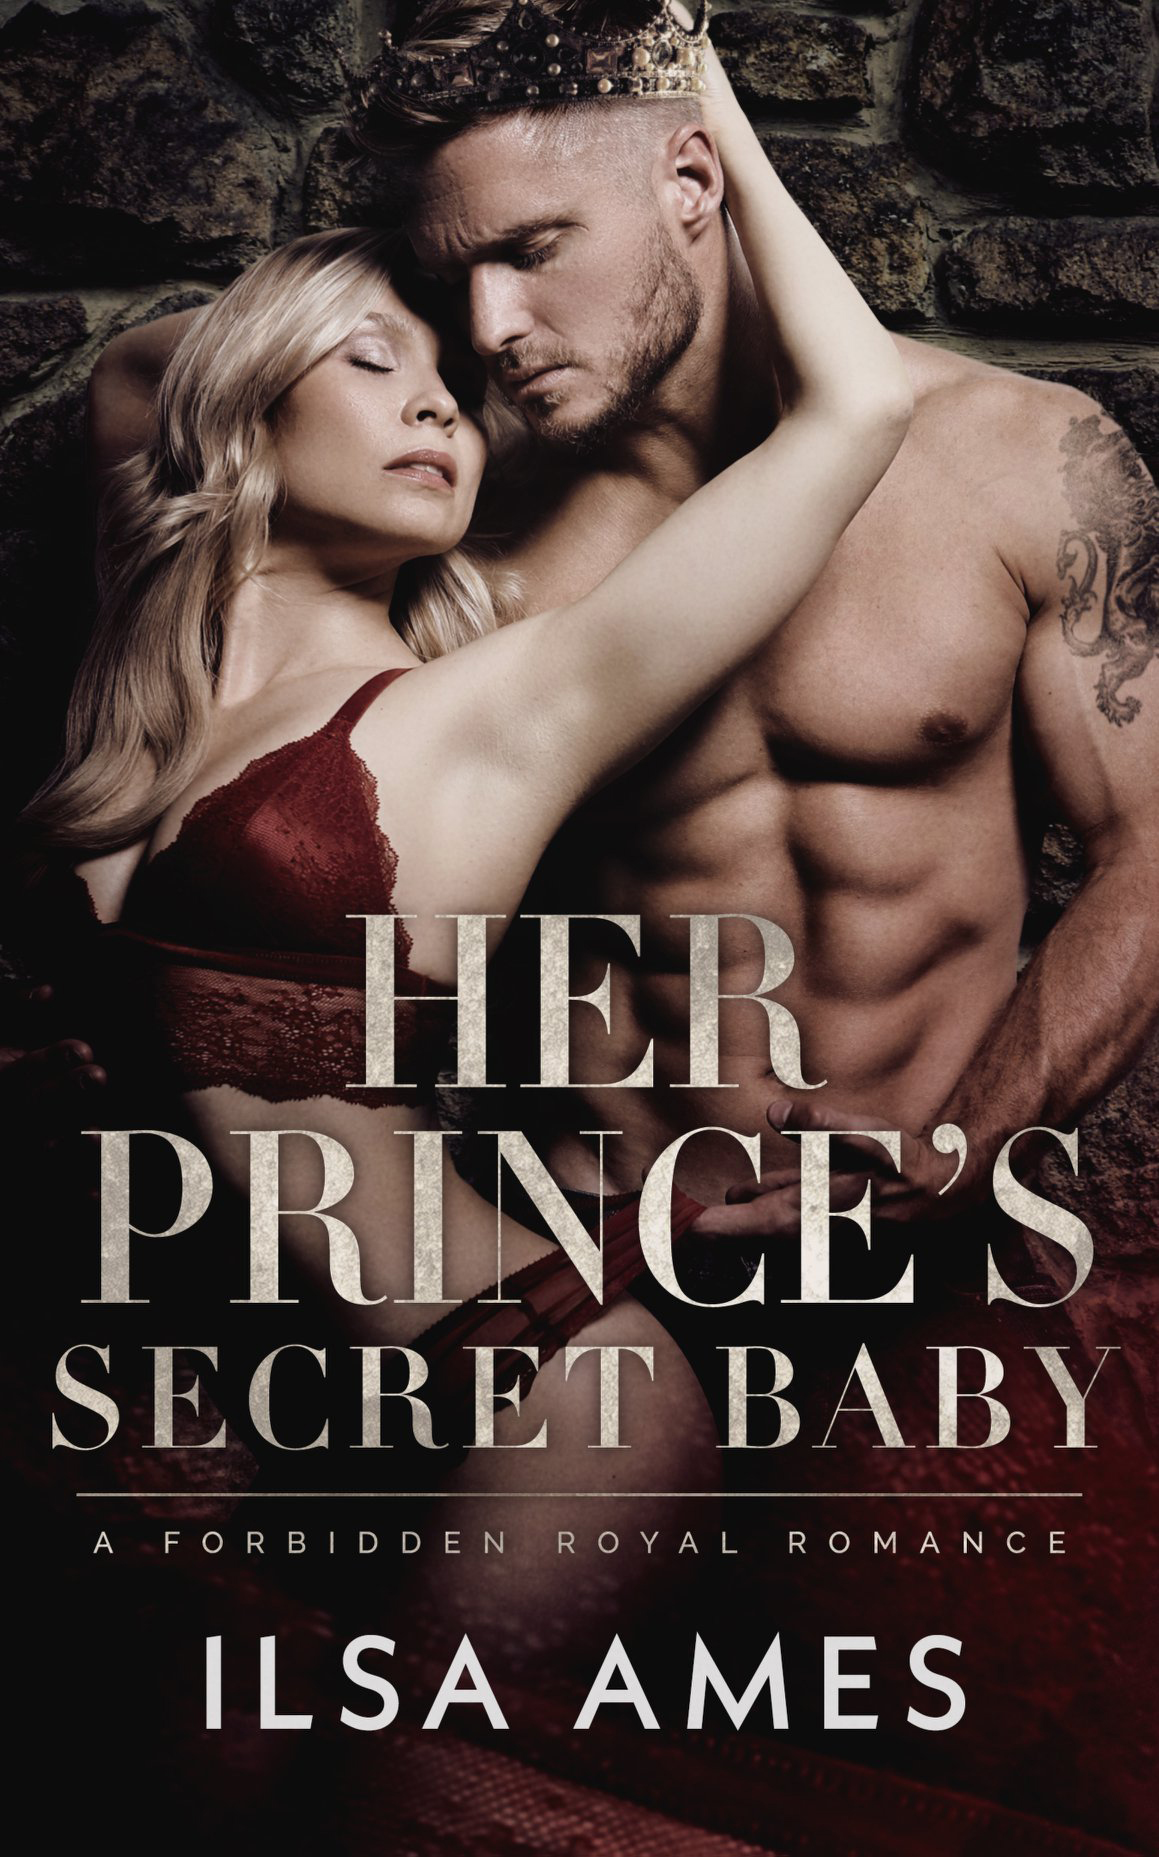 HER PRINCE'S SECRET BABY